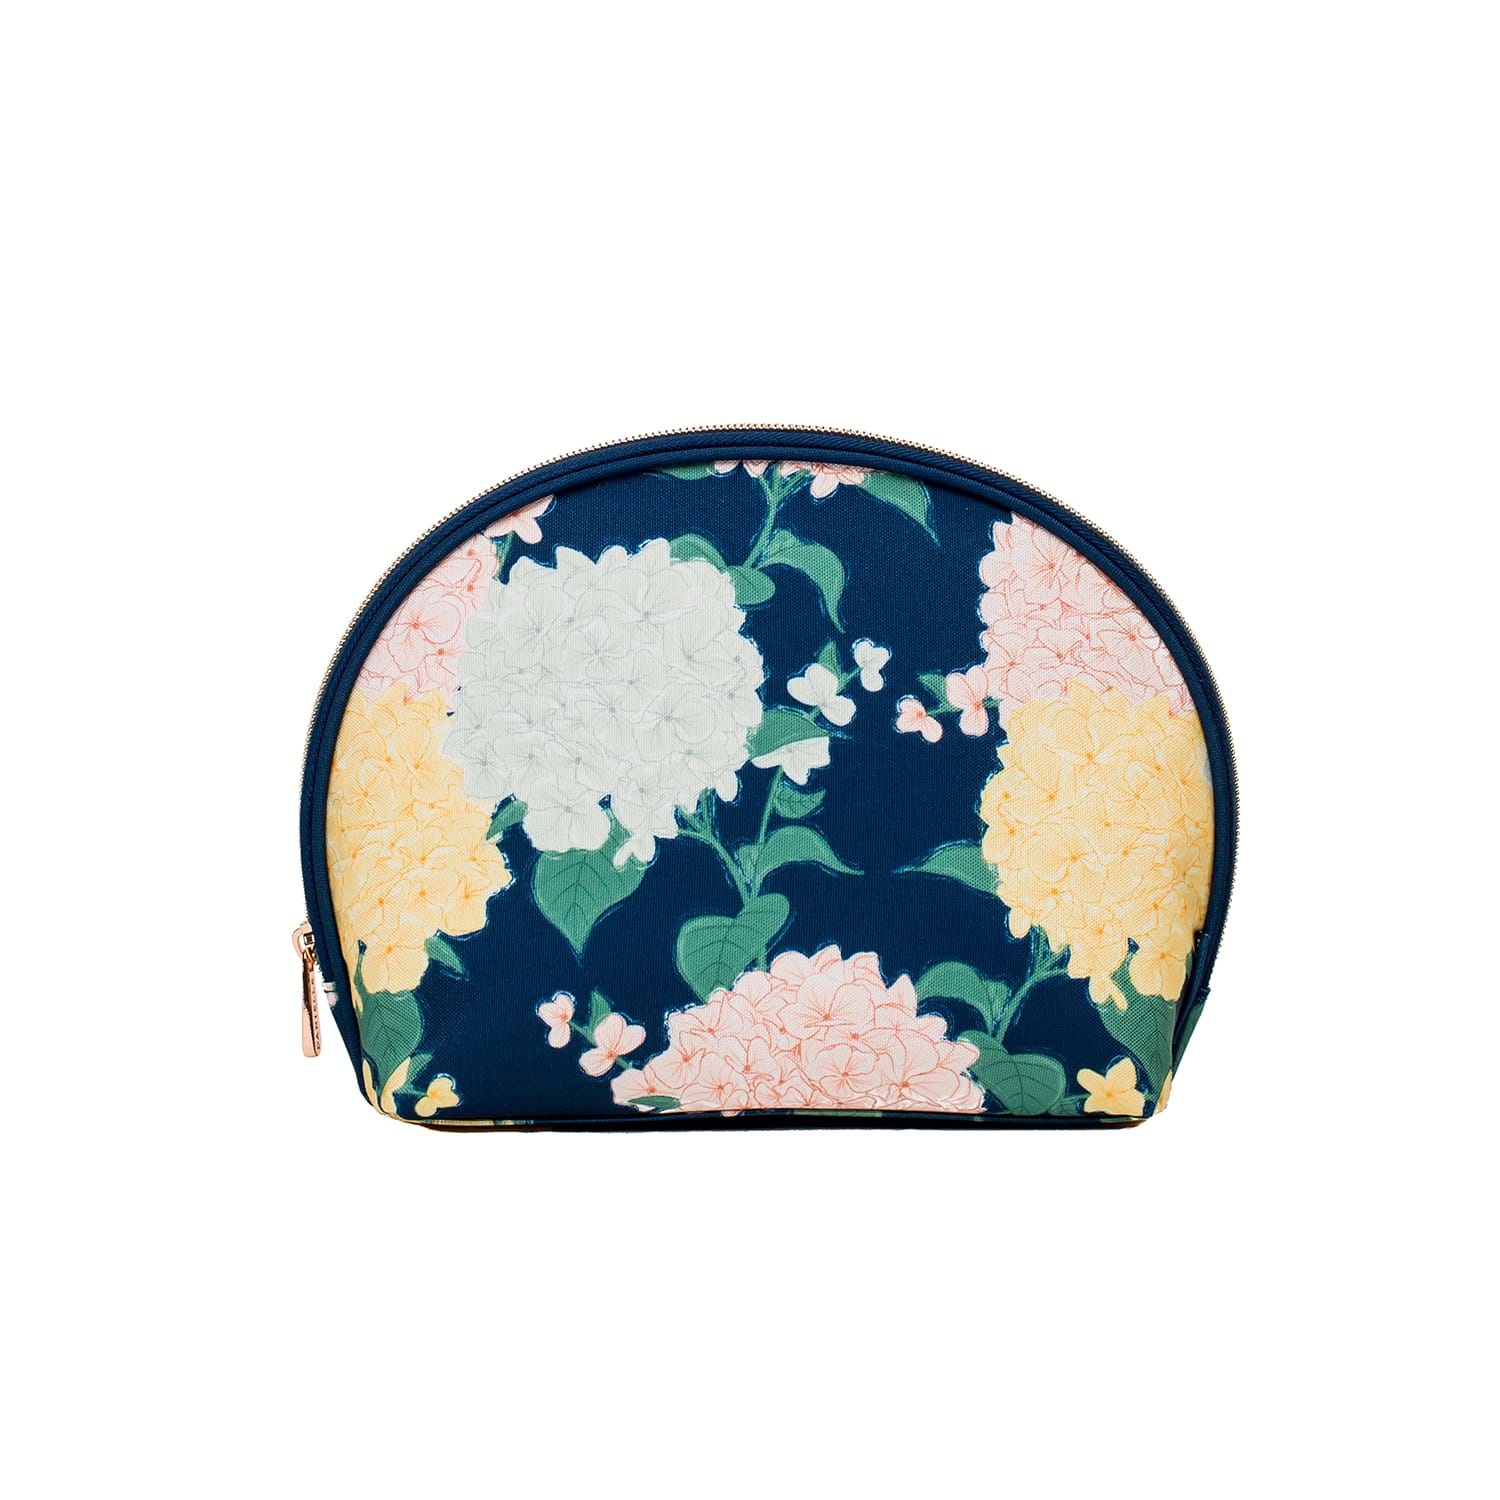 Image of Danielle Exclusive Creations Oval Beauty Bag, Oh Fleur Hydrangea Print